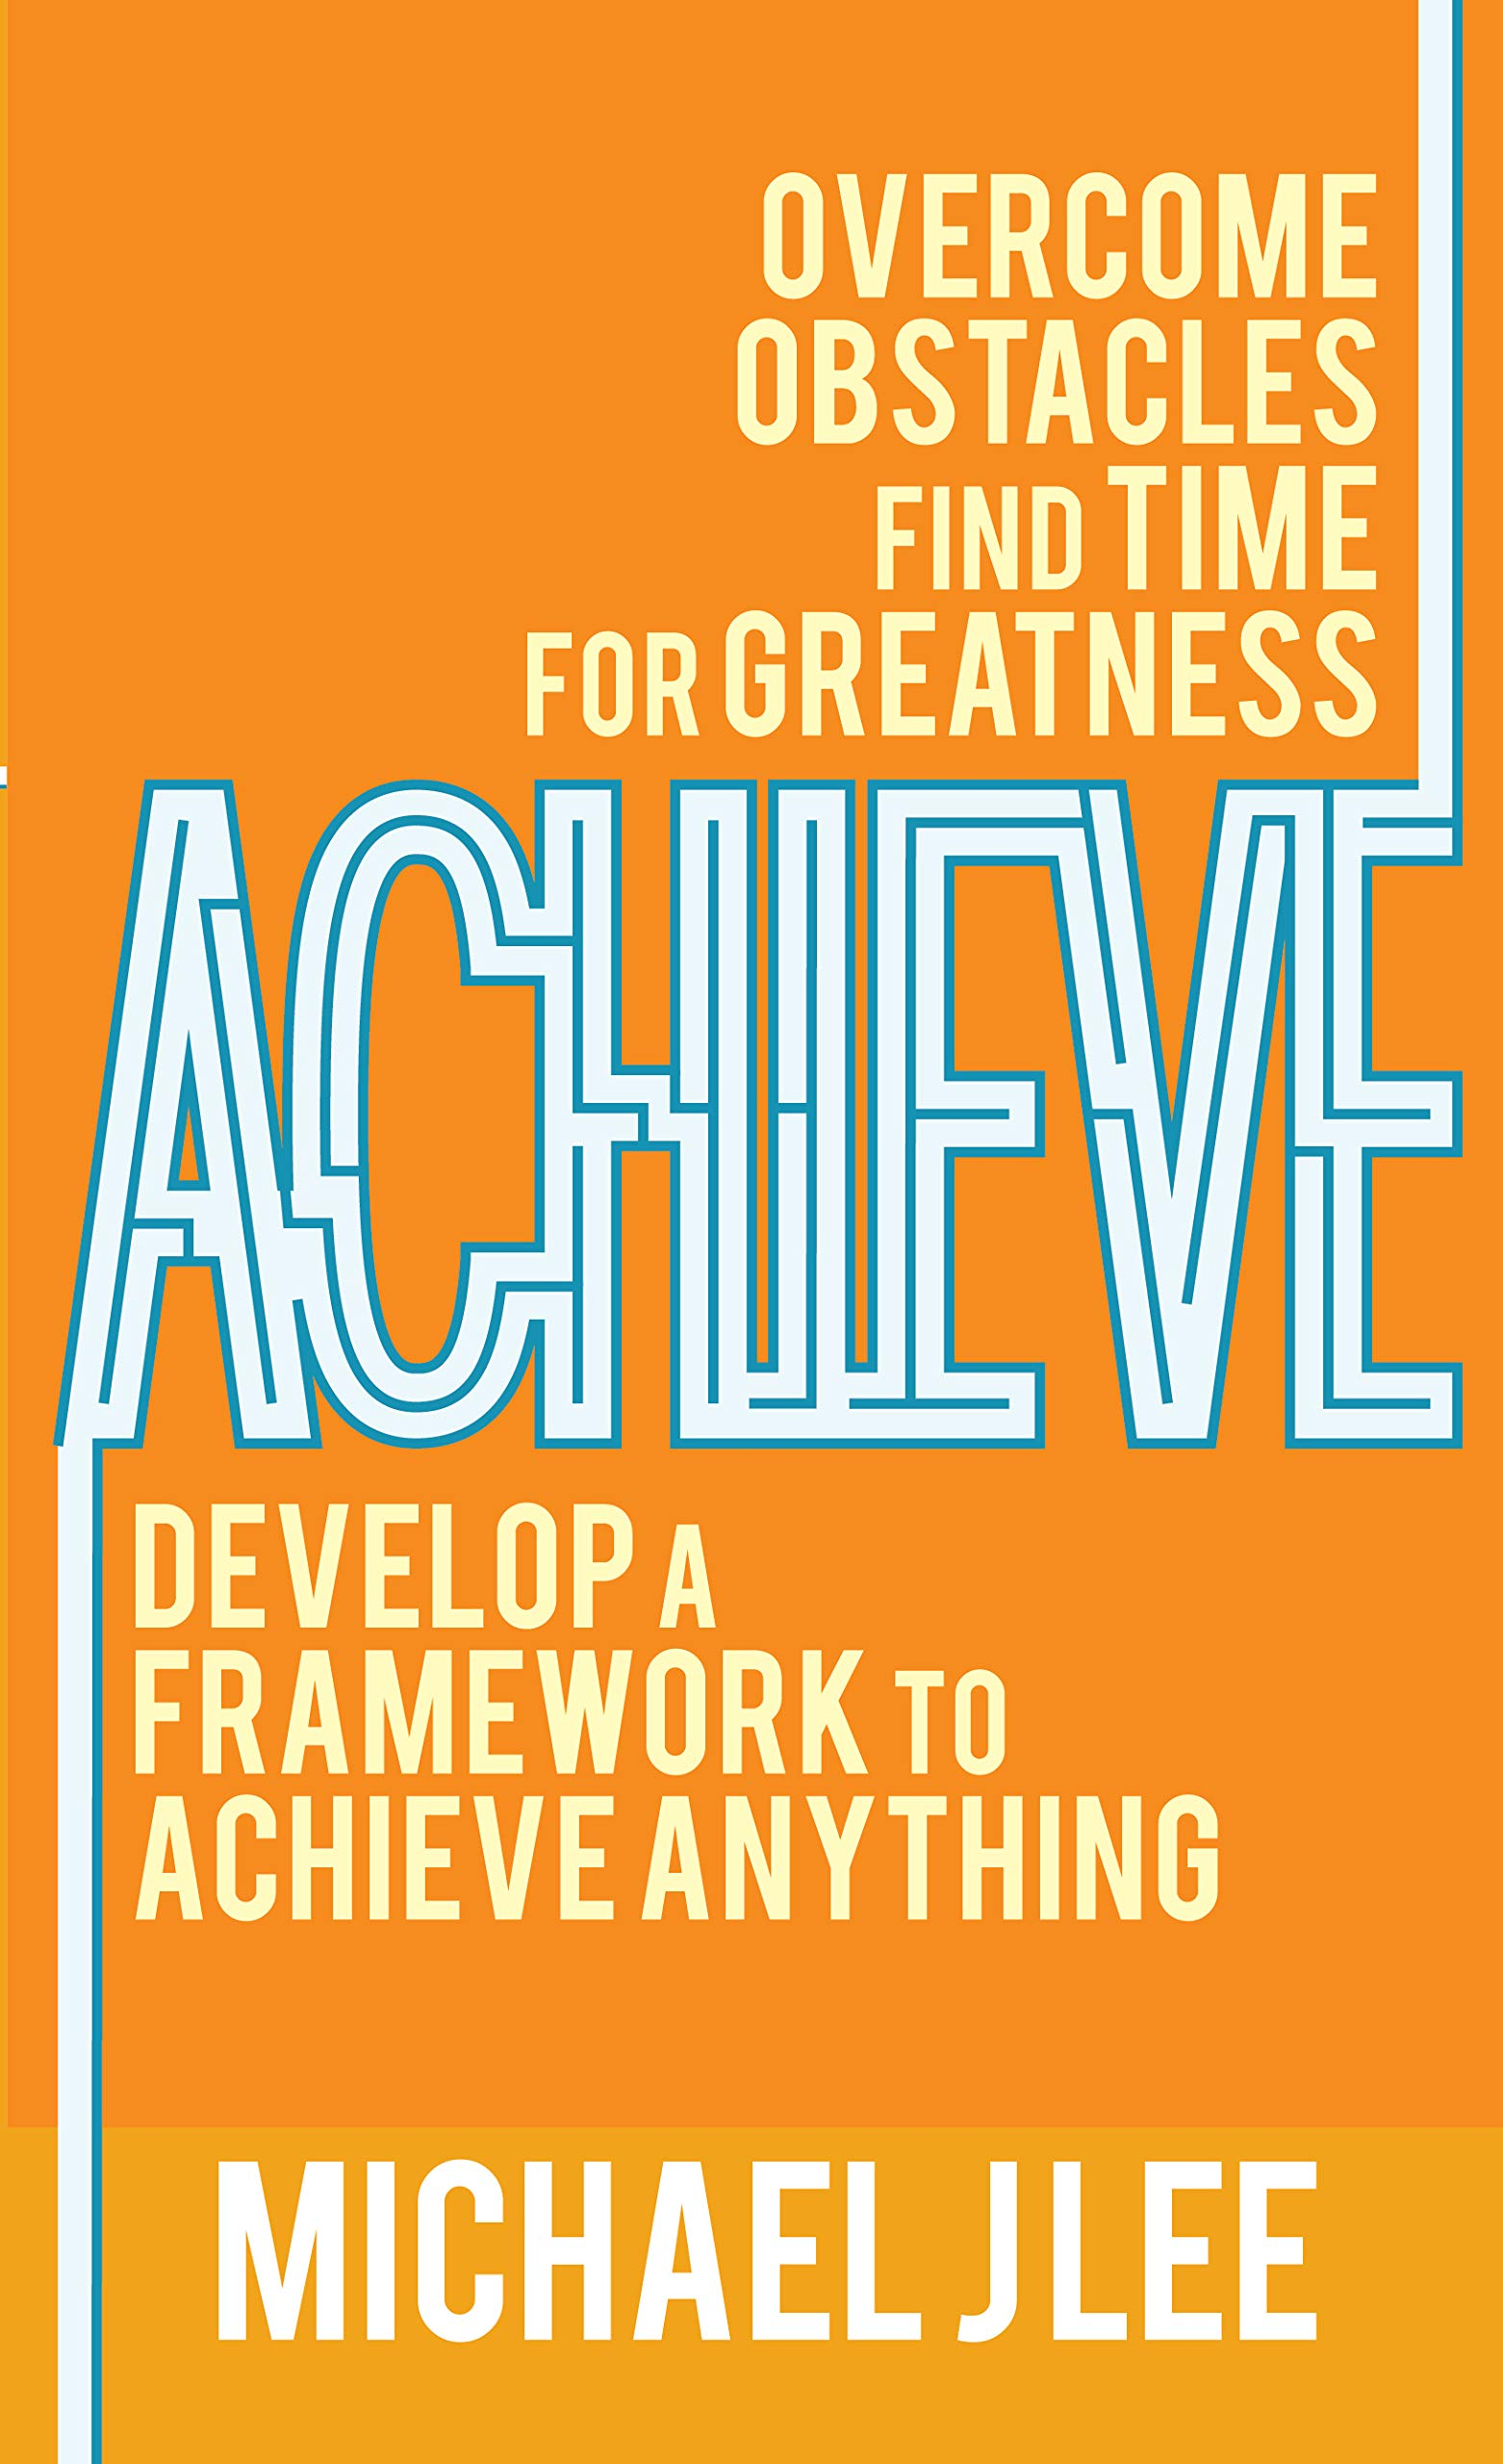 Achieve: Overcome Obstacles. Find Time for Greatness. Develop a Framework to Achieve Anything.